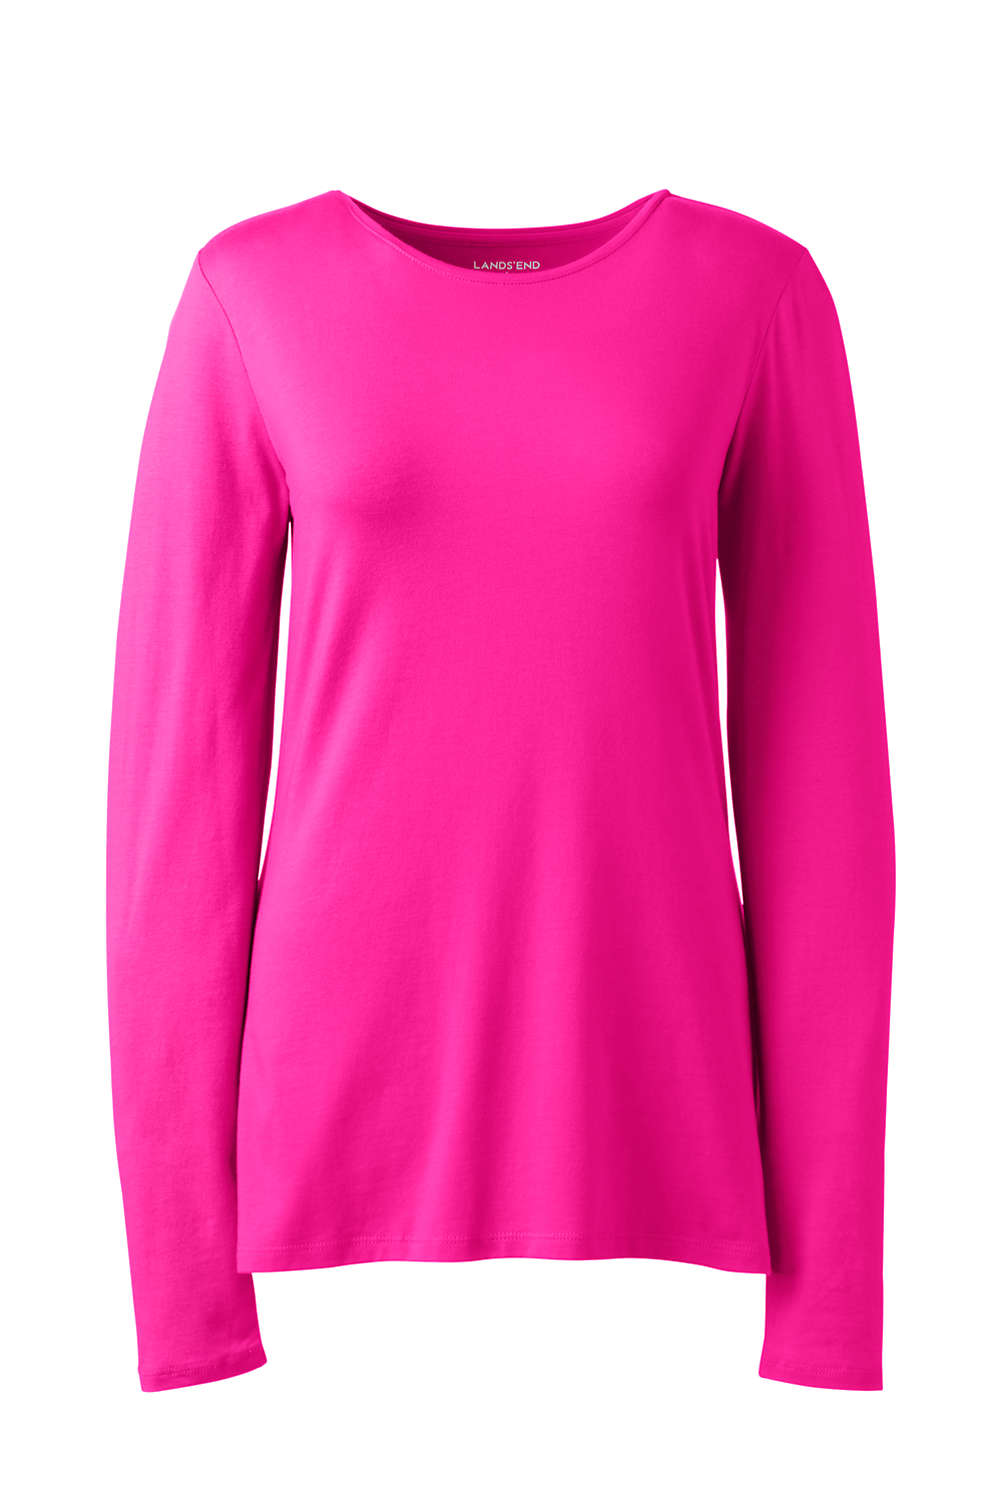 dcce57eac875 Women's Plus Size Lightweight Fitted Long Sleeve T-Shirt - Shaped Layering  Crewneck from Lands' End